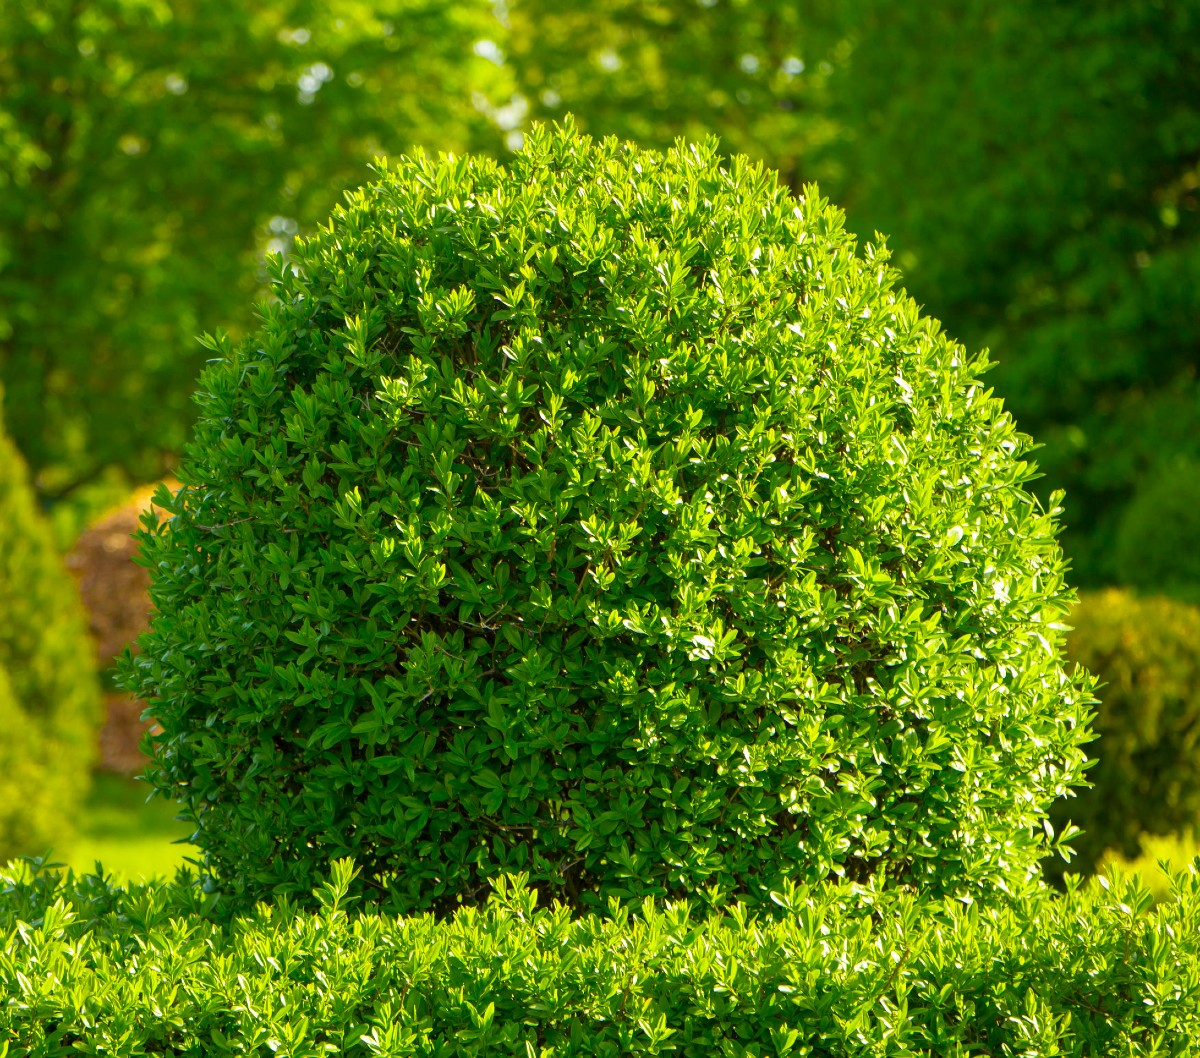 The boxwood is a traditional shrub that can be pruned into a variety of different shapes.